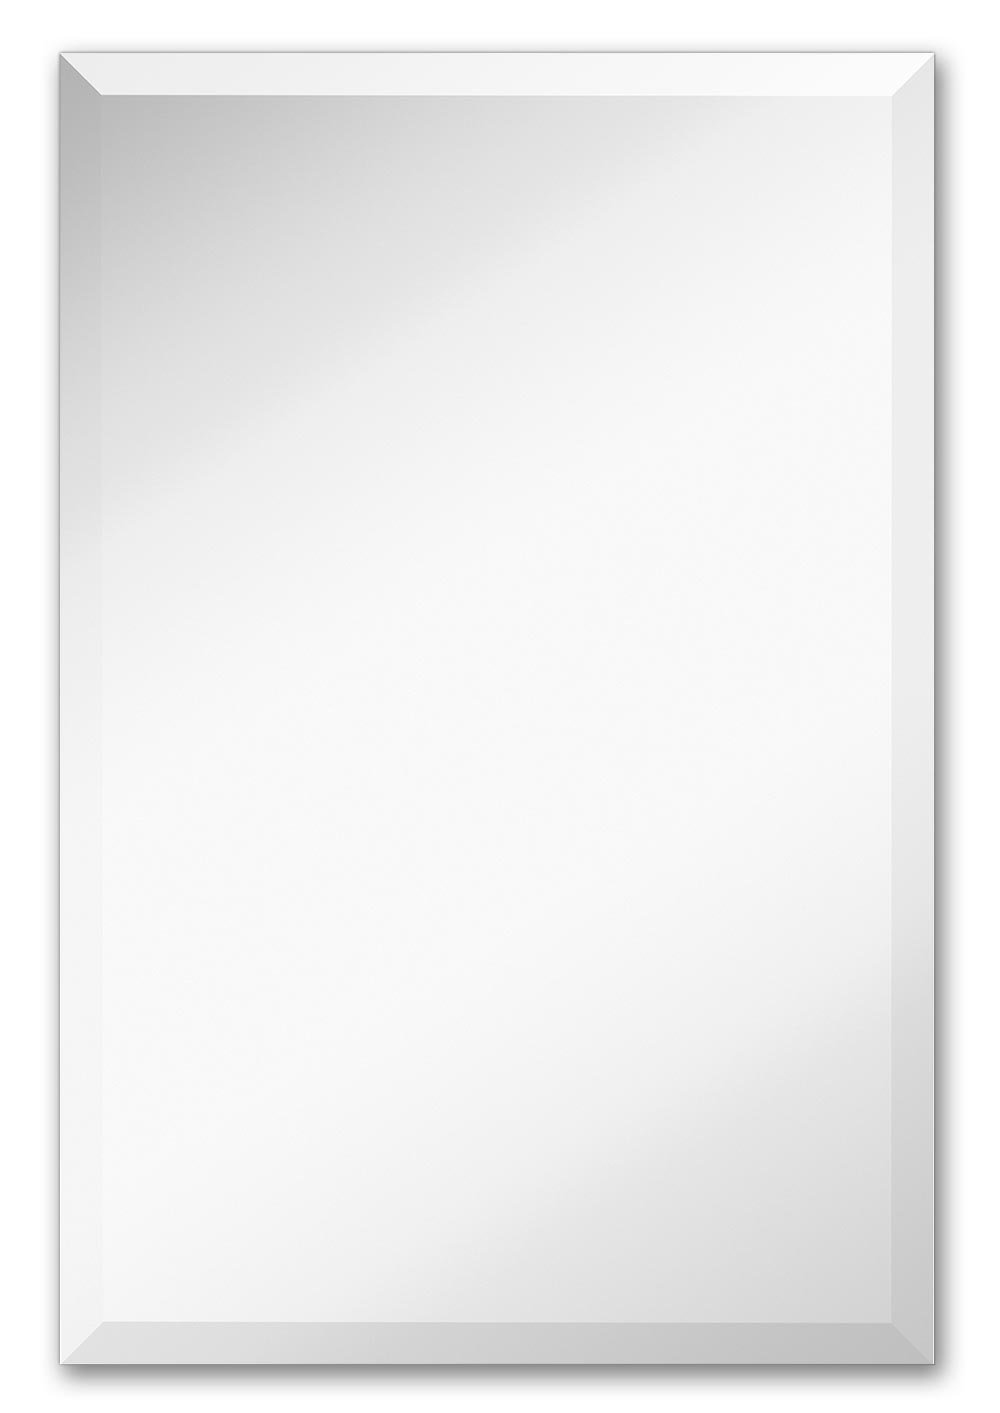 Large Simple Rectangular Streamlined 1 Inch Beveled Wall Mirror | Premium Silver Backed Rectangle Mirrored Glass Panel Vanity, Bedroom, or Bathroom Hangs Horizontal & Vertical Frameless (20''W x 30''H)